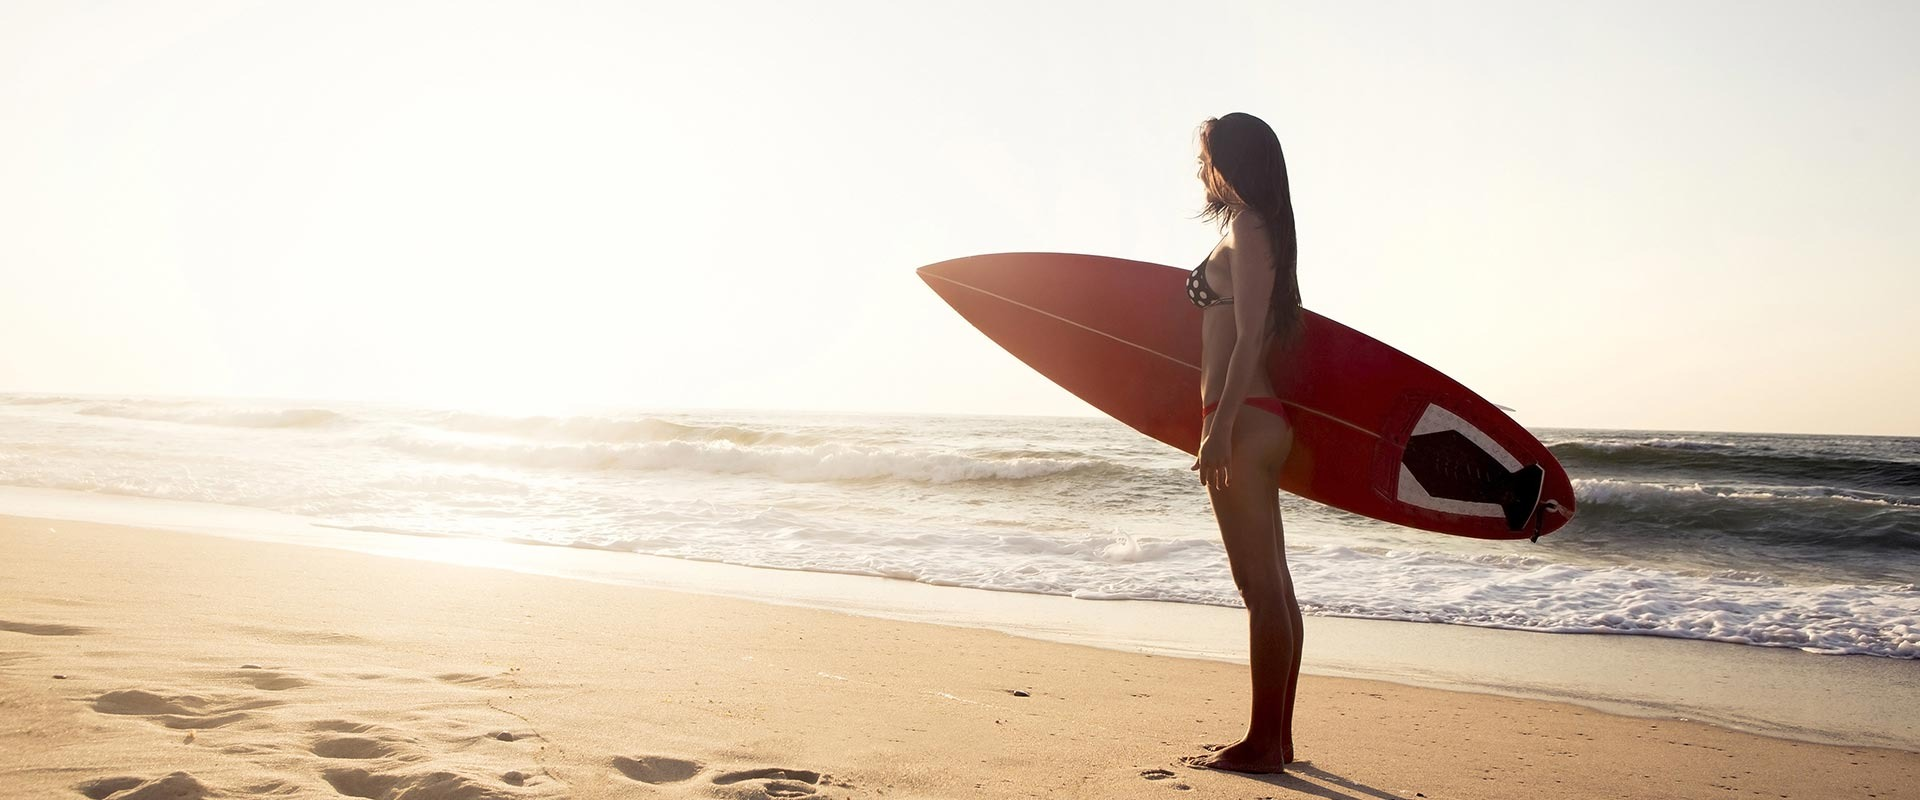 SURFING LESSONS Learn to surf  from only R200 per lesson or R800 for 5!